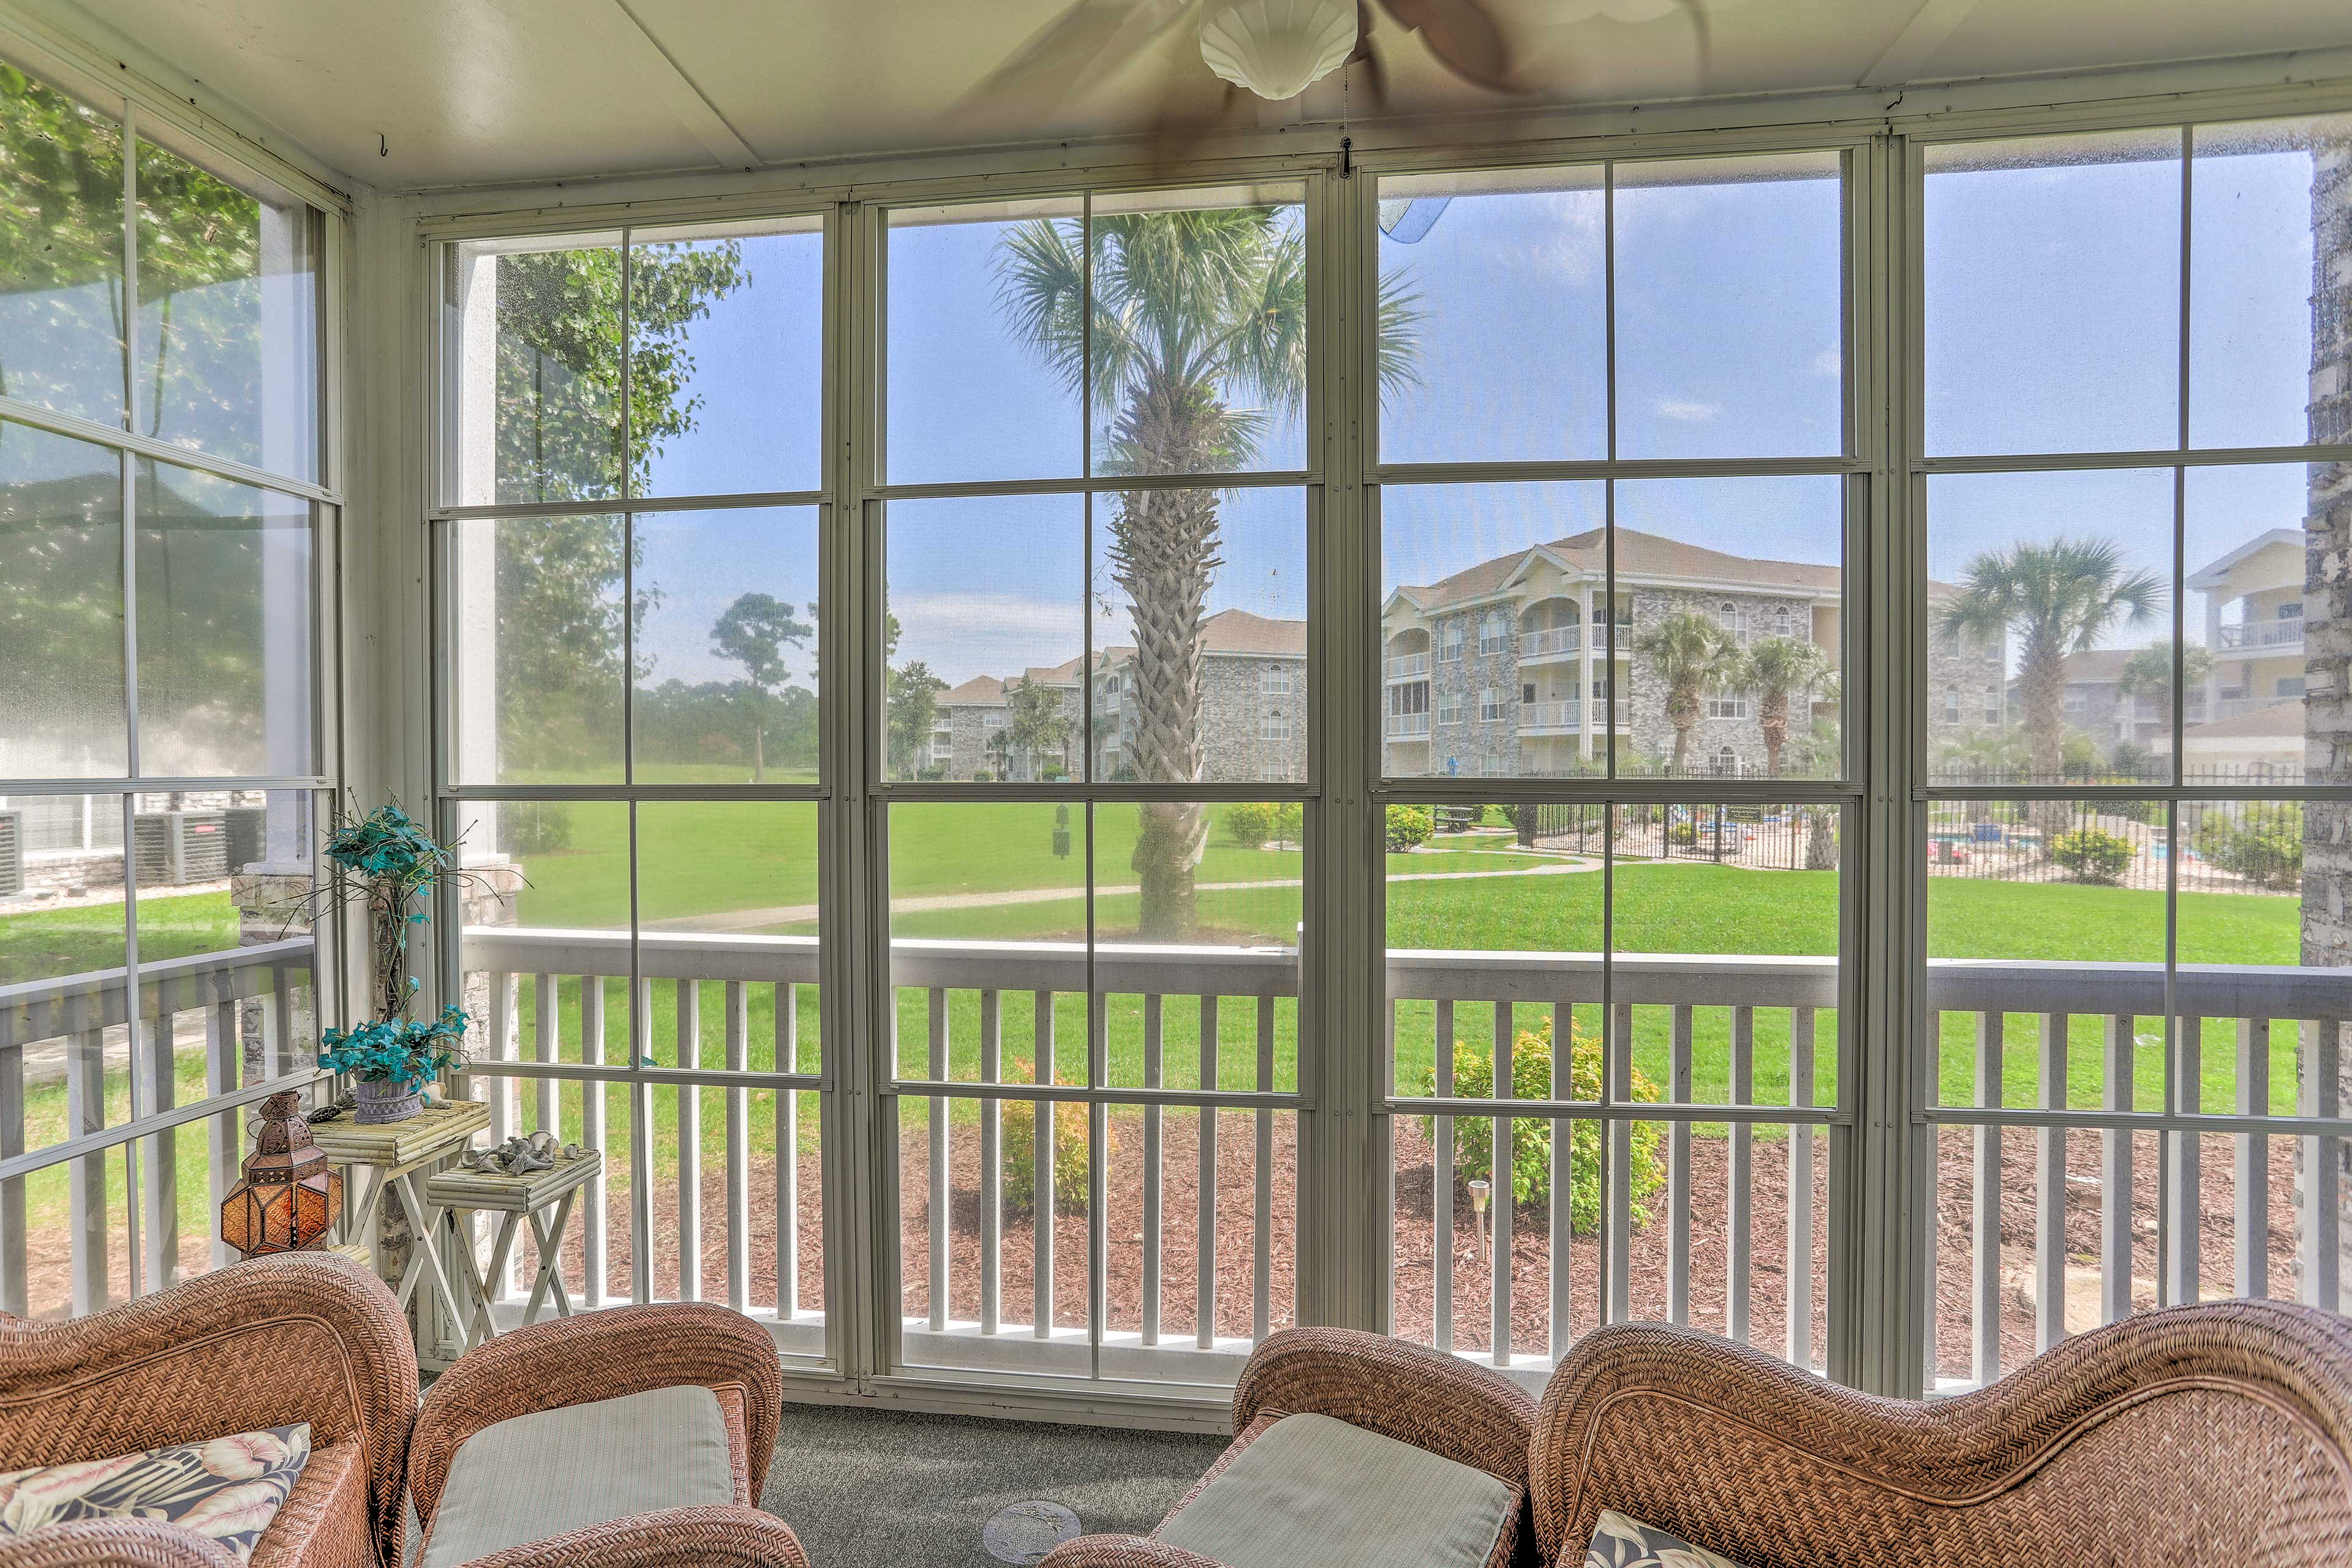 You'll have views of the pool from the comfort of the porch.